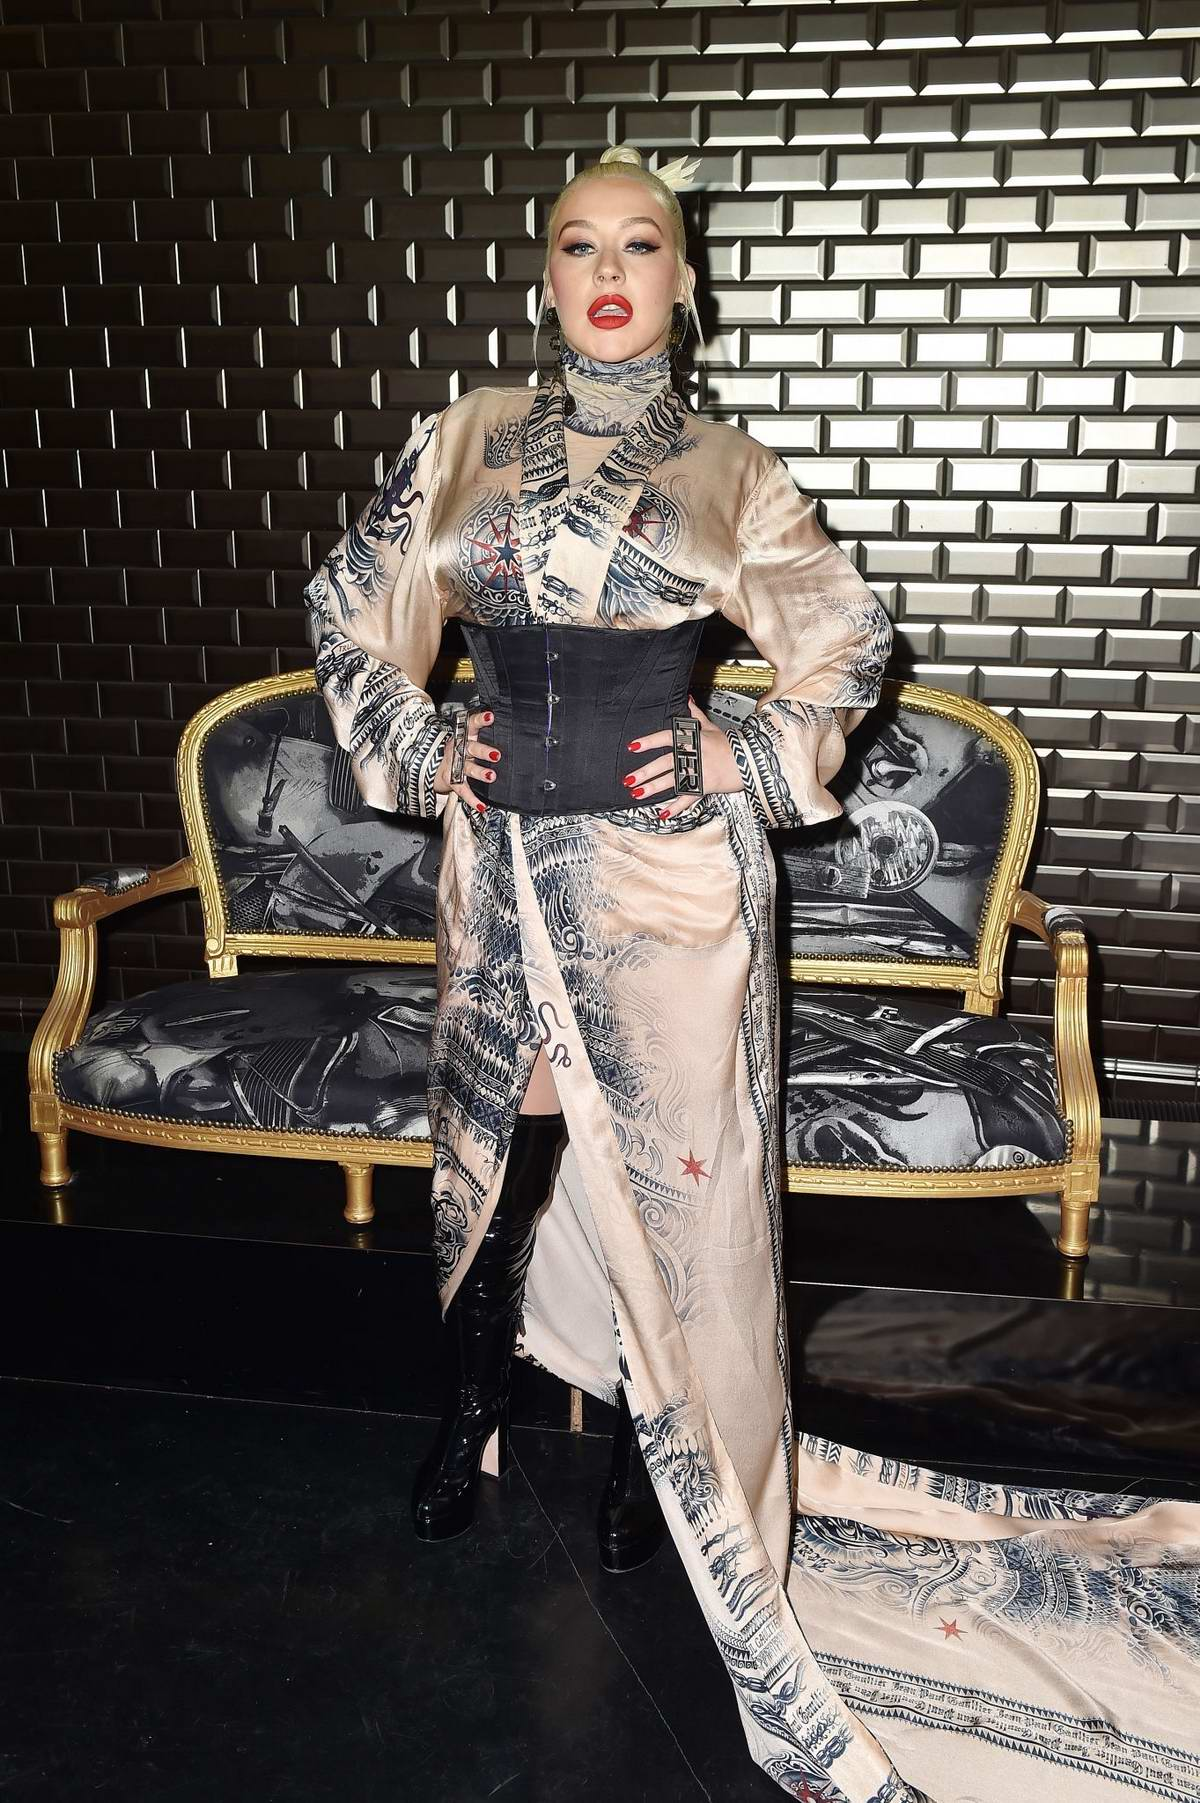 Christina Aguilera attends the Jean Paul Gaultier Haute Couture Fall/Winter 2019/20 show during Paris Fashion Week in Paris, France